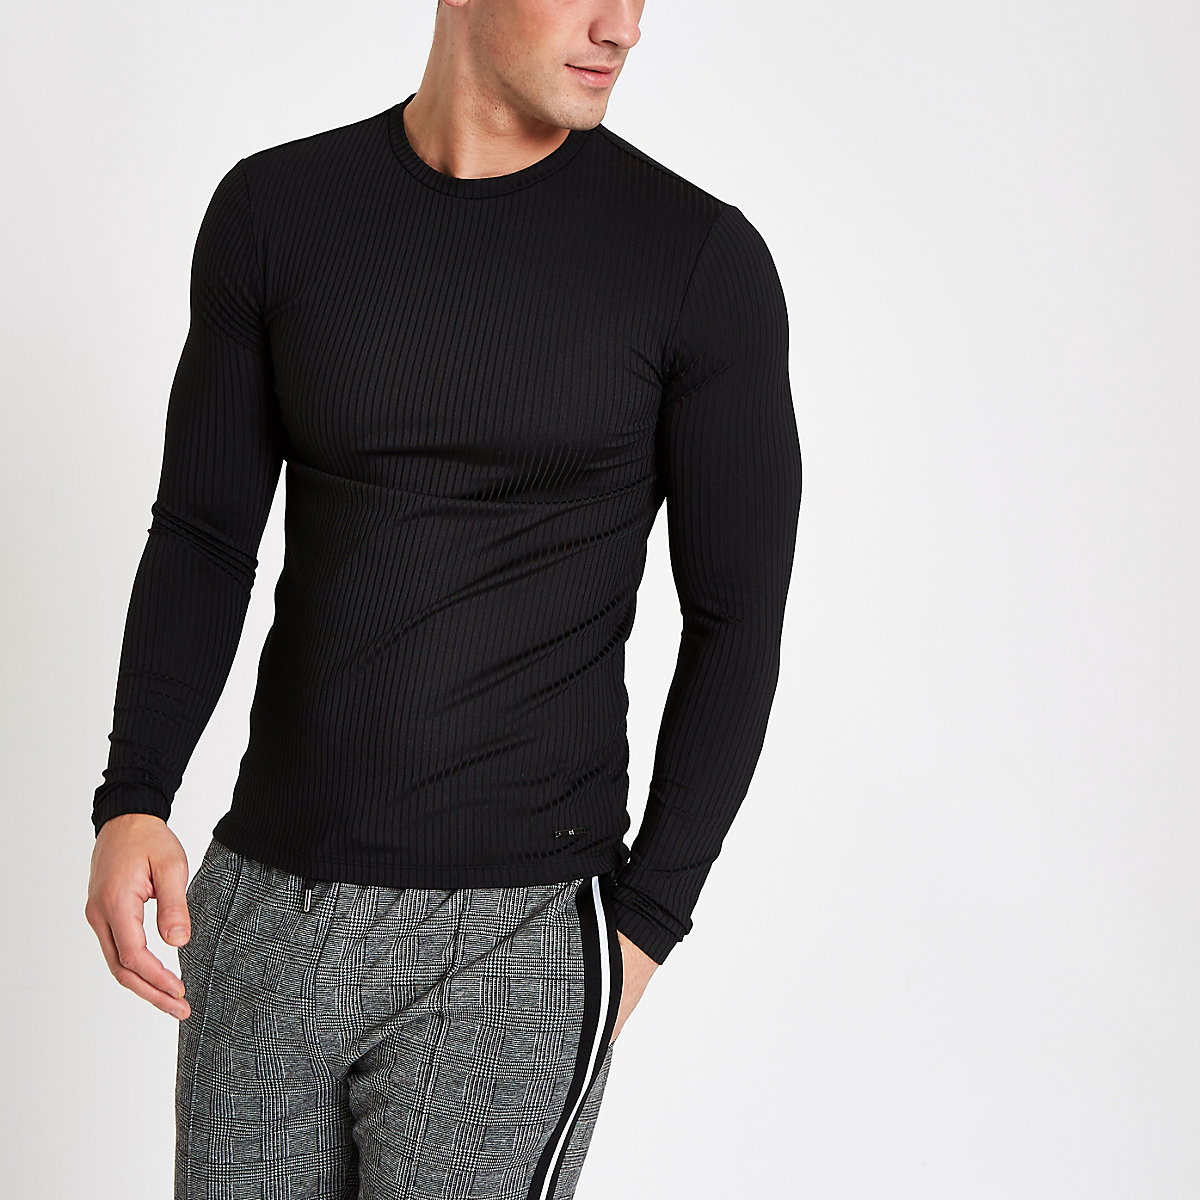 Black ribbed crew neck long sleeve top